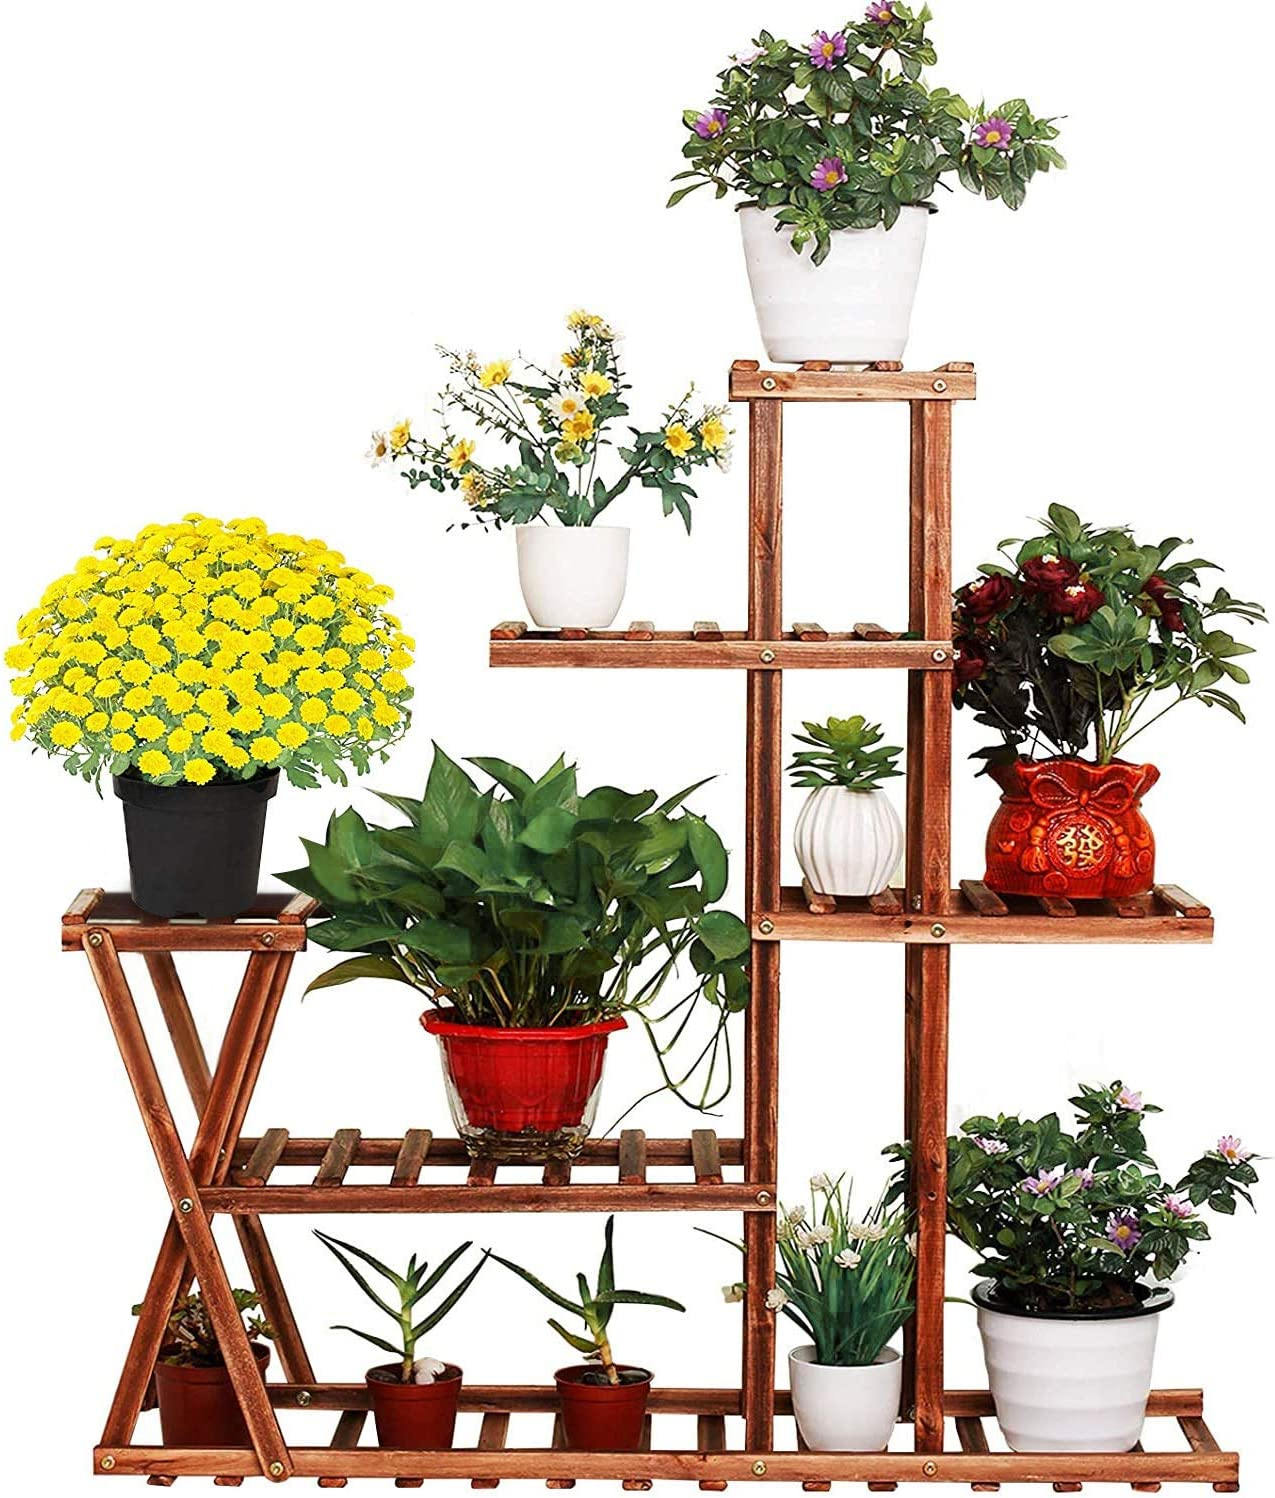 Wooden Plant Stand Shelf, 5 Tier Multi-Shelvings Flower Pot Holder Plant Shelf Display Storage Rack Shelving Unit for Plants Displaying Living Room Patio Garden Balcony Outdoor Indoor Corner